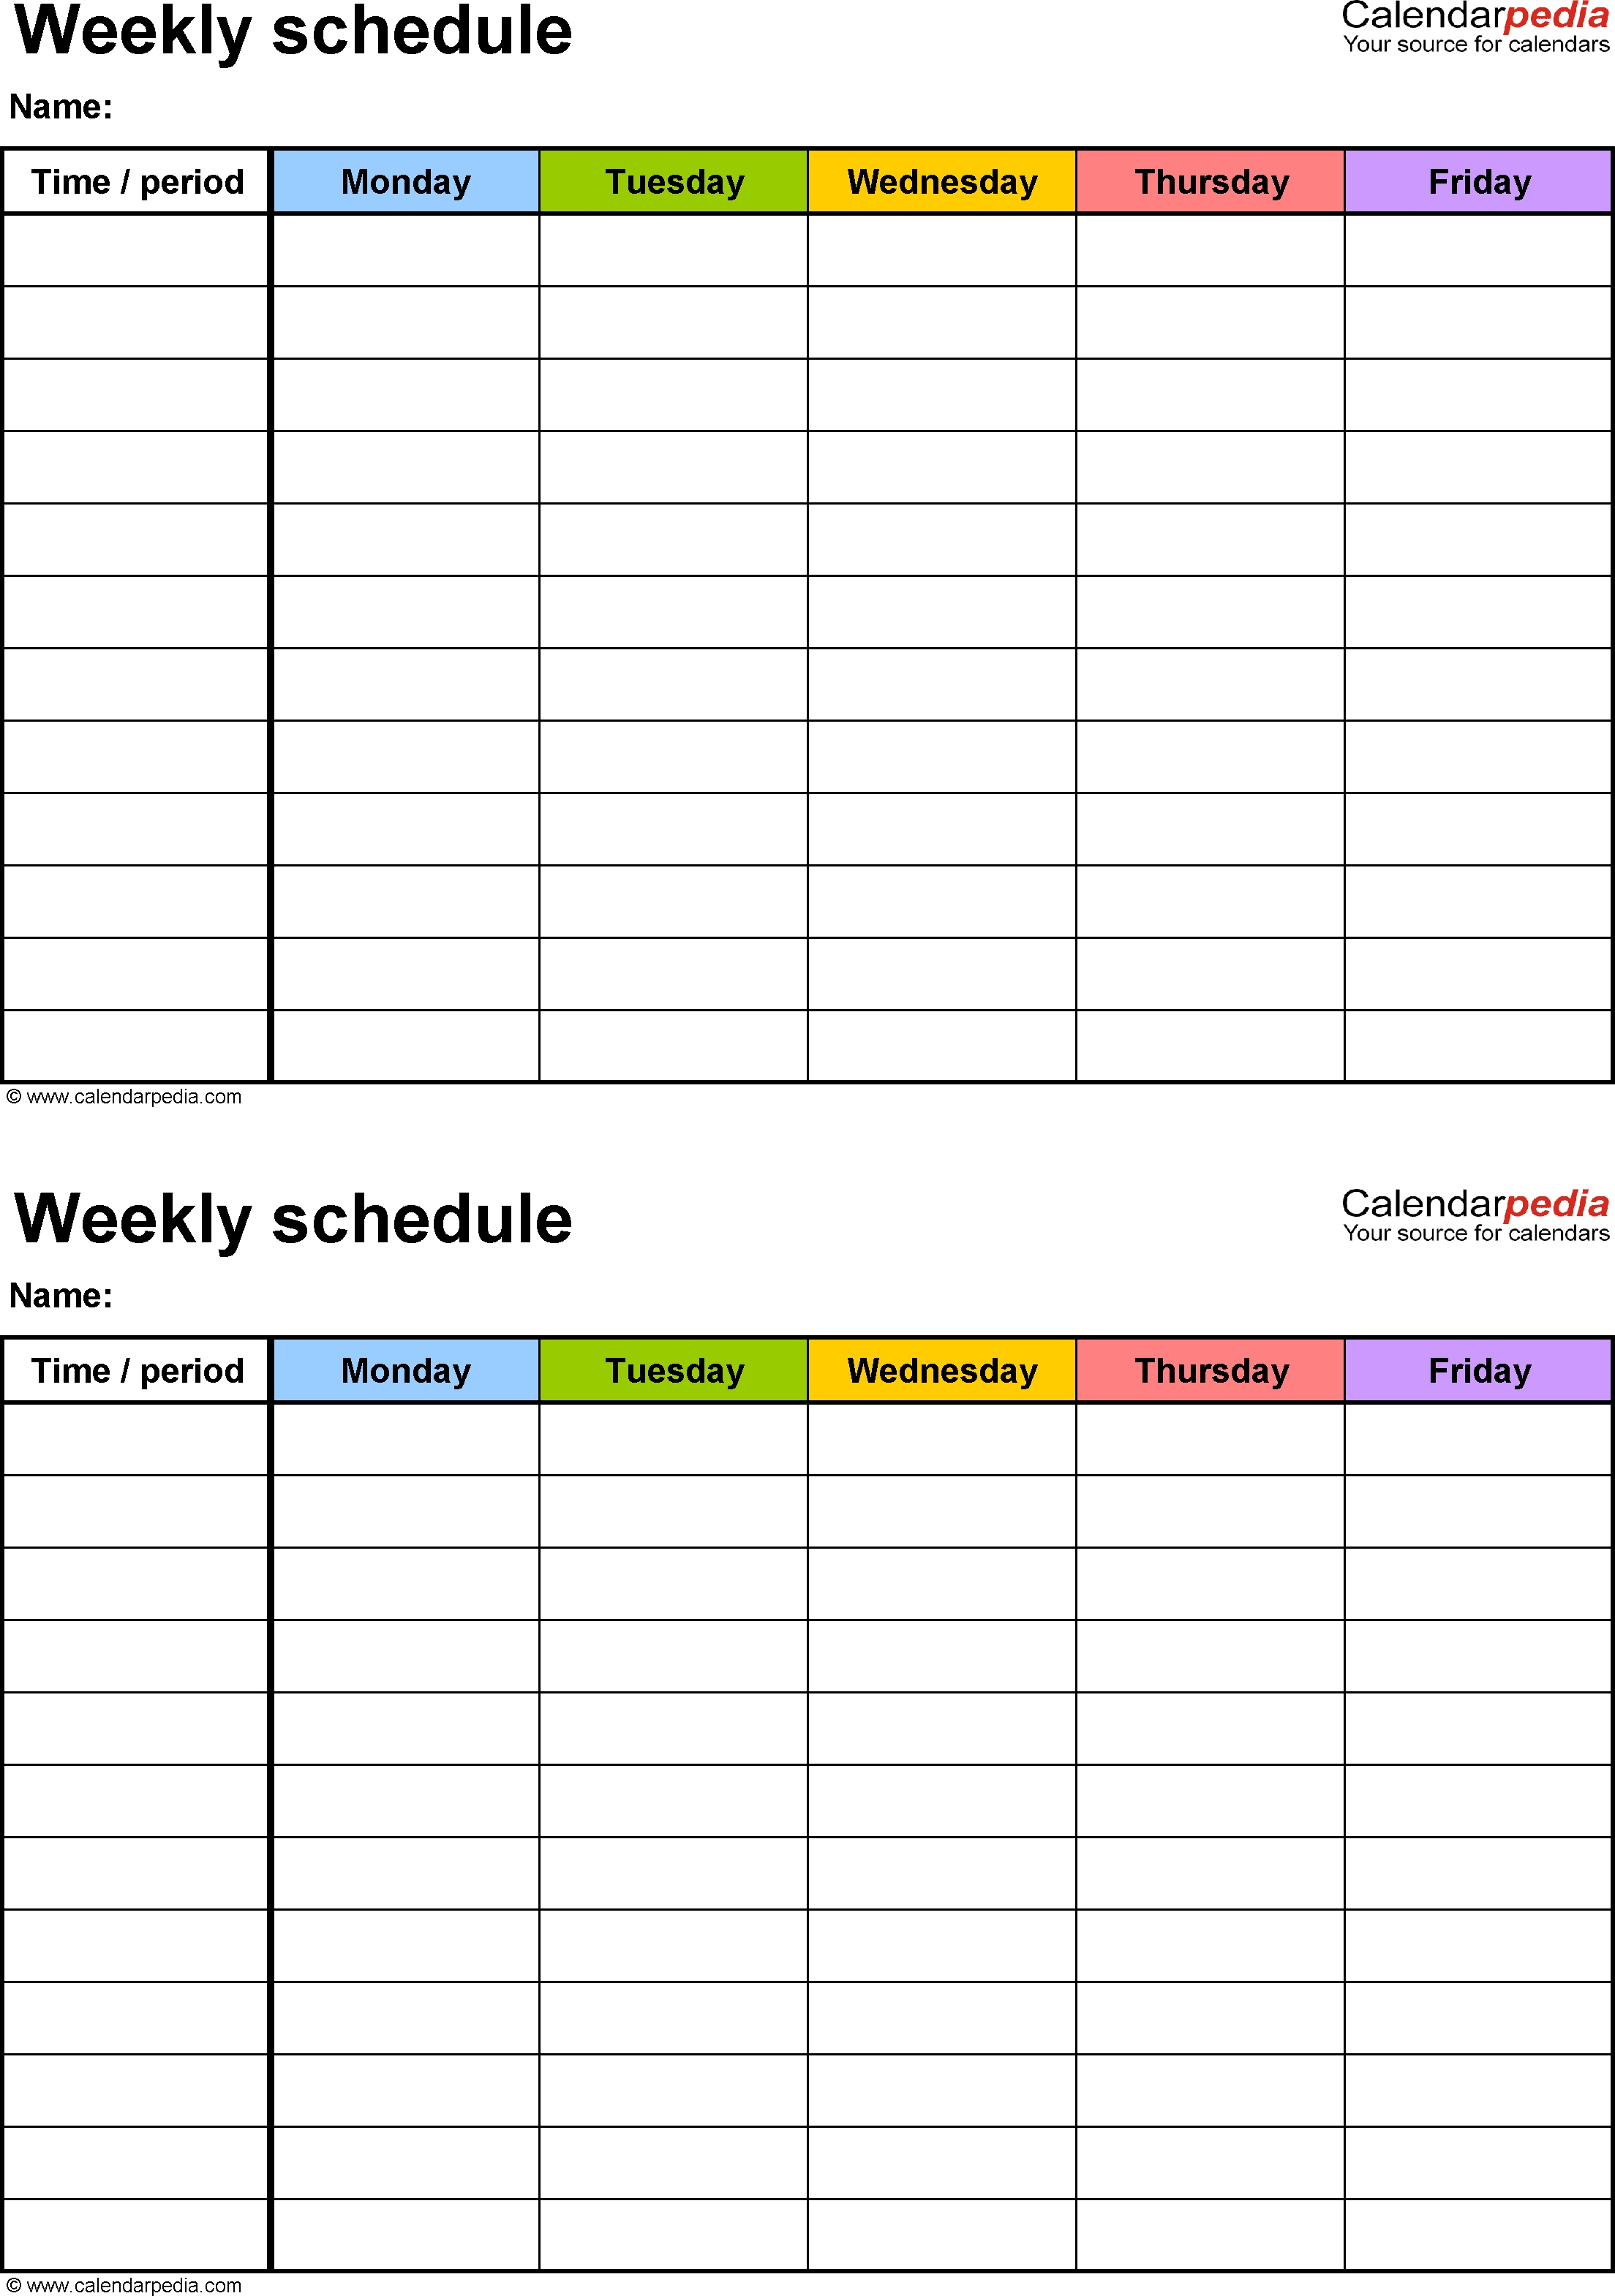 Free Weekly Schedule Templates For Word - 18 Templates with Free Printable 5 Day Calendar